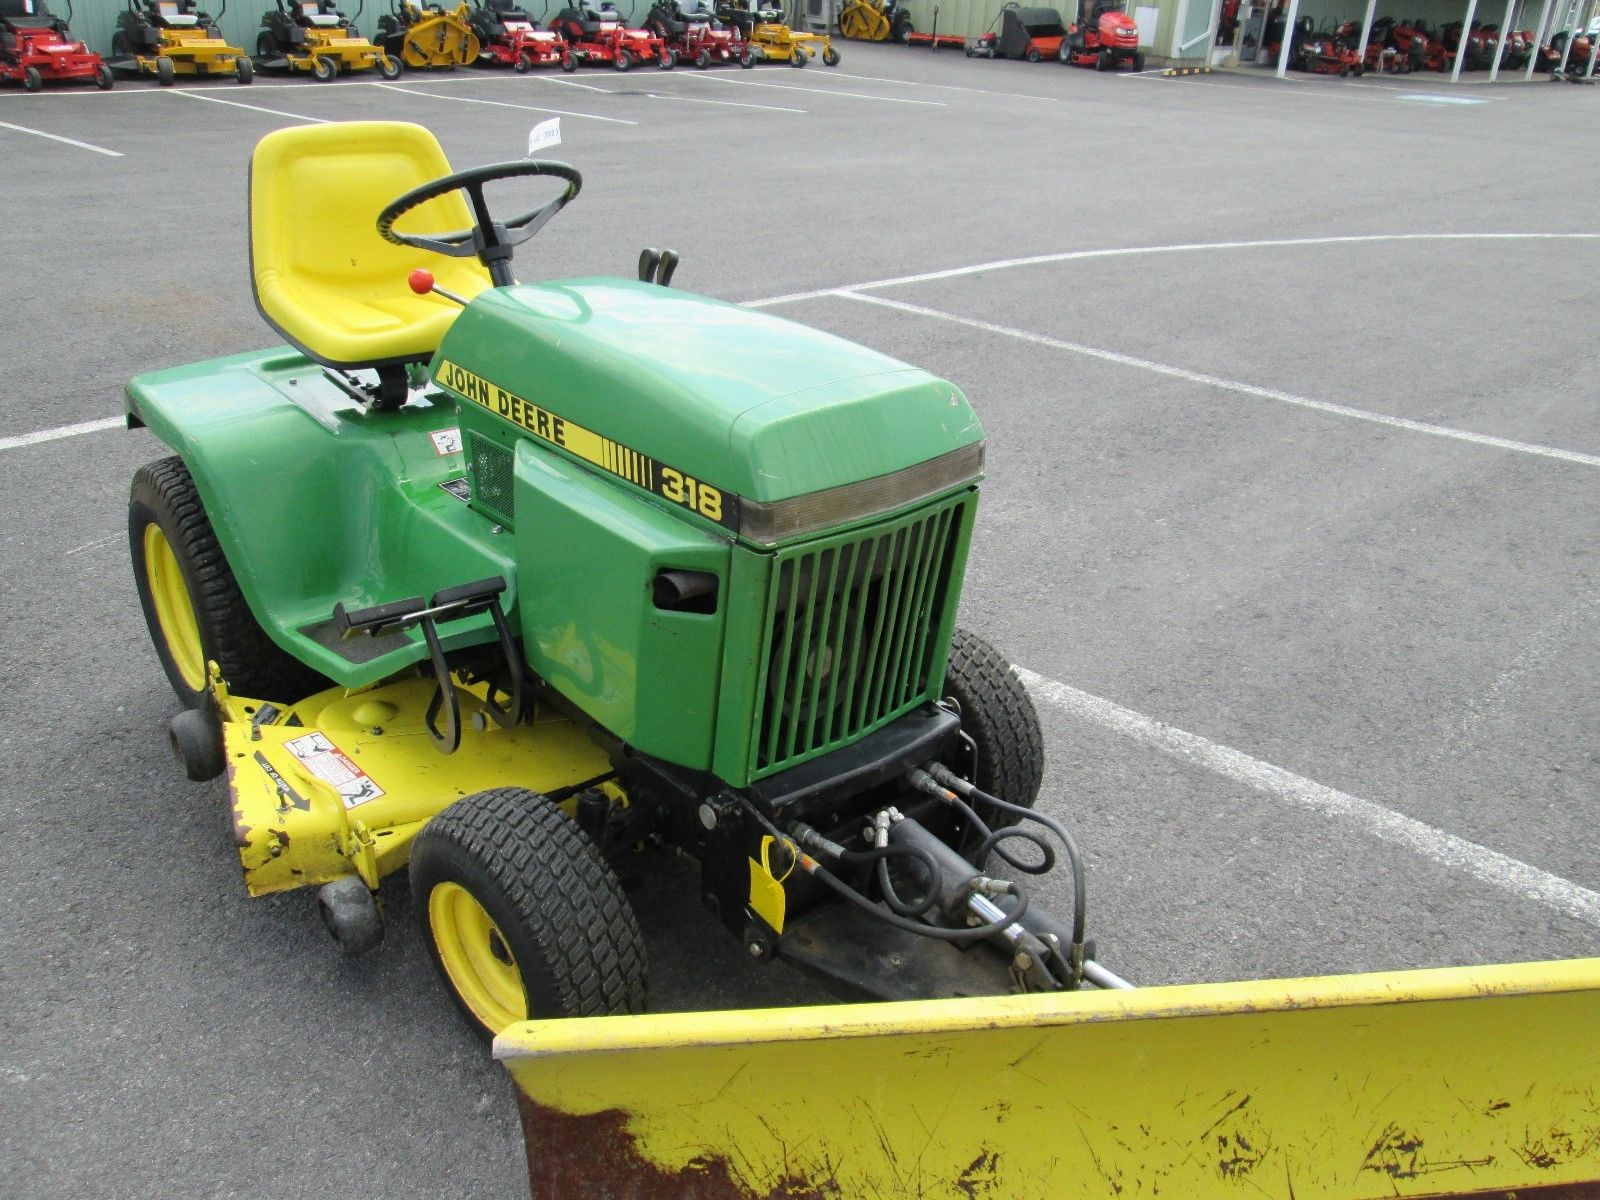 John Deere 318 W/ 50 Mower Deck And 54 Blade W/ Hydraulic Lift/angle | What's it worth